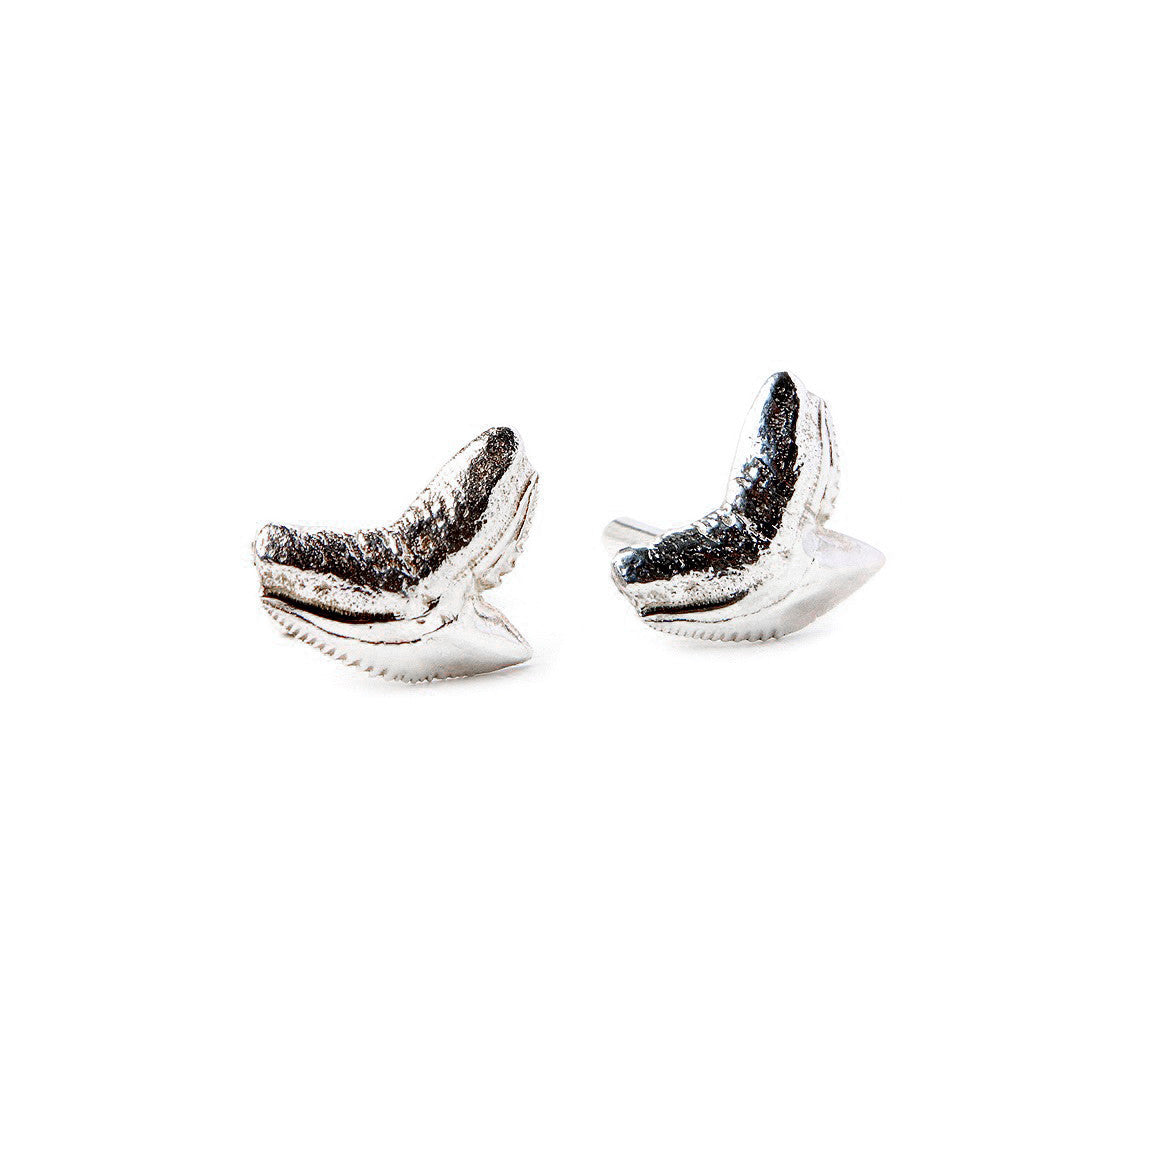 Silver shark and teeth cufflinks for men